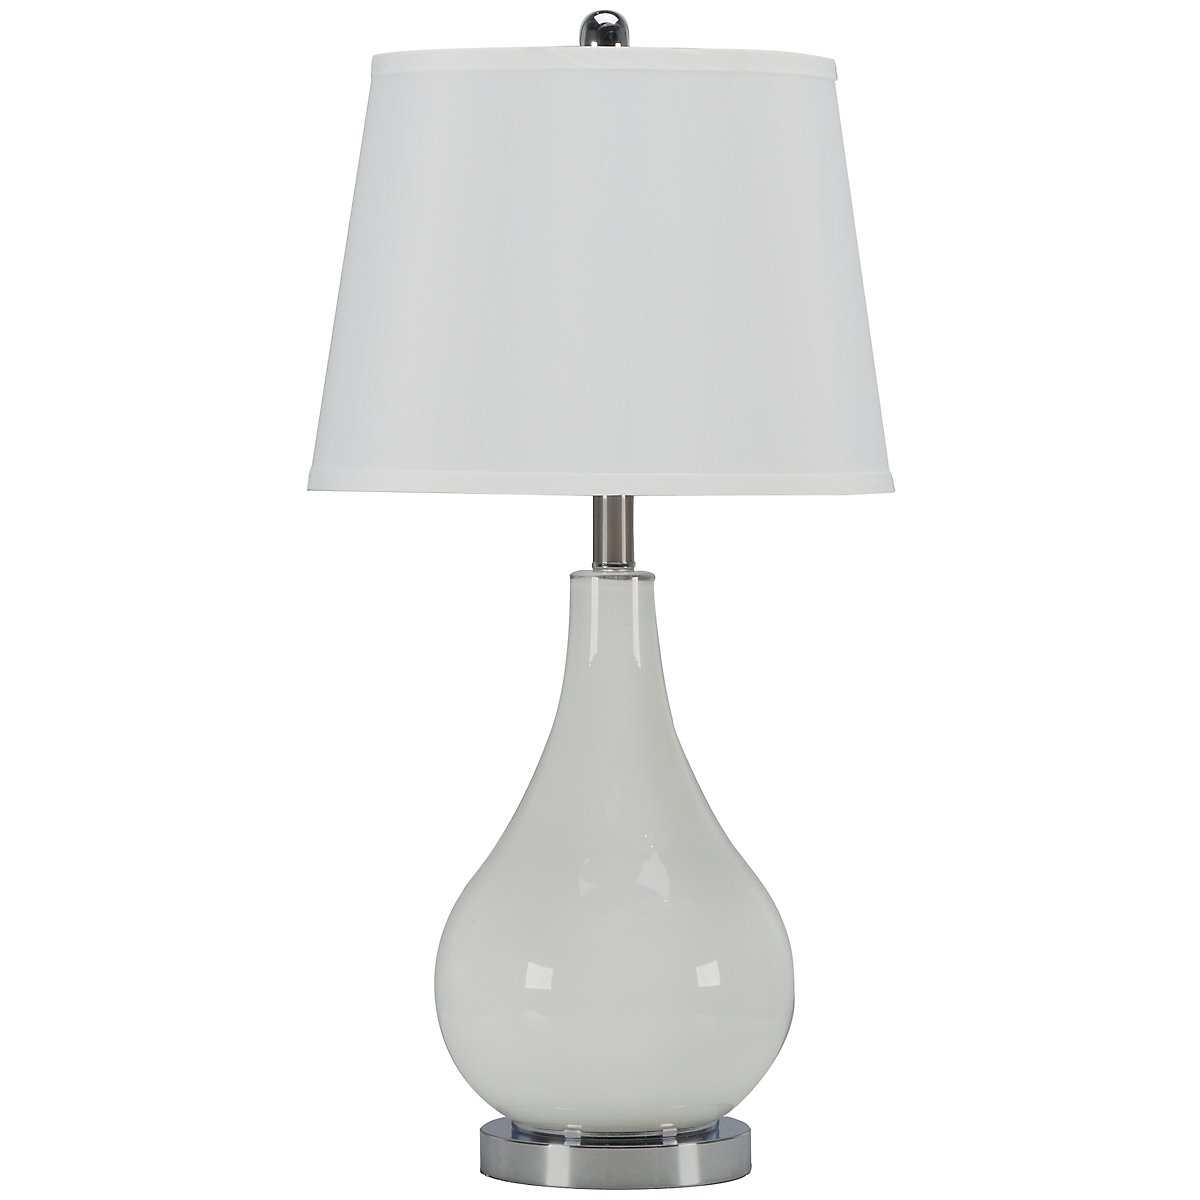 Britt White Table Lamp